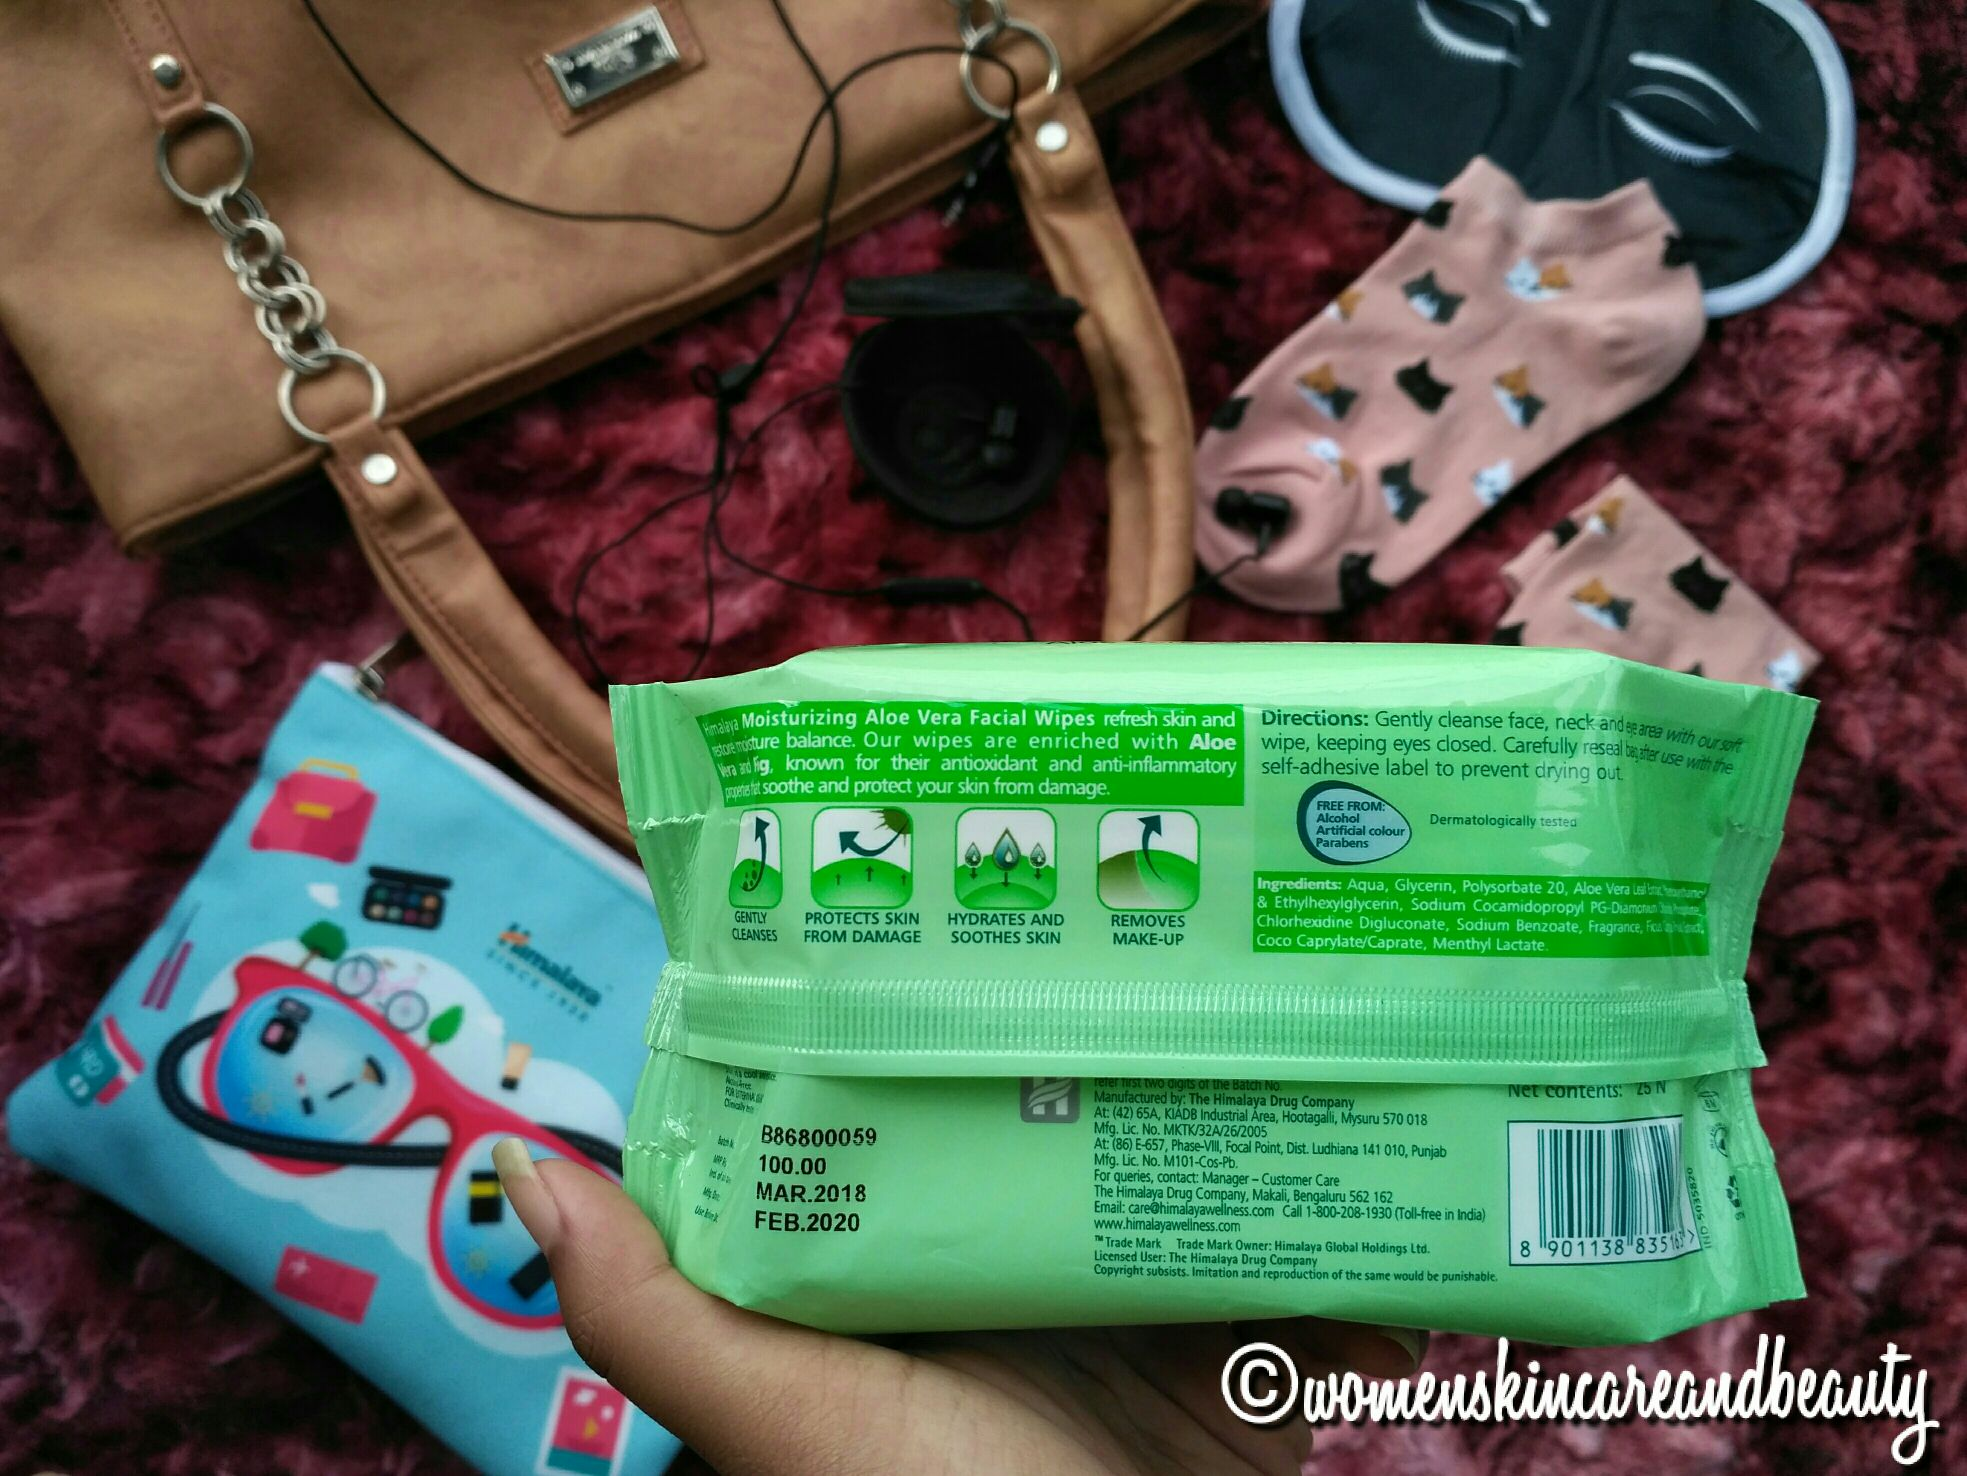 Himalaya facial wipes